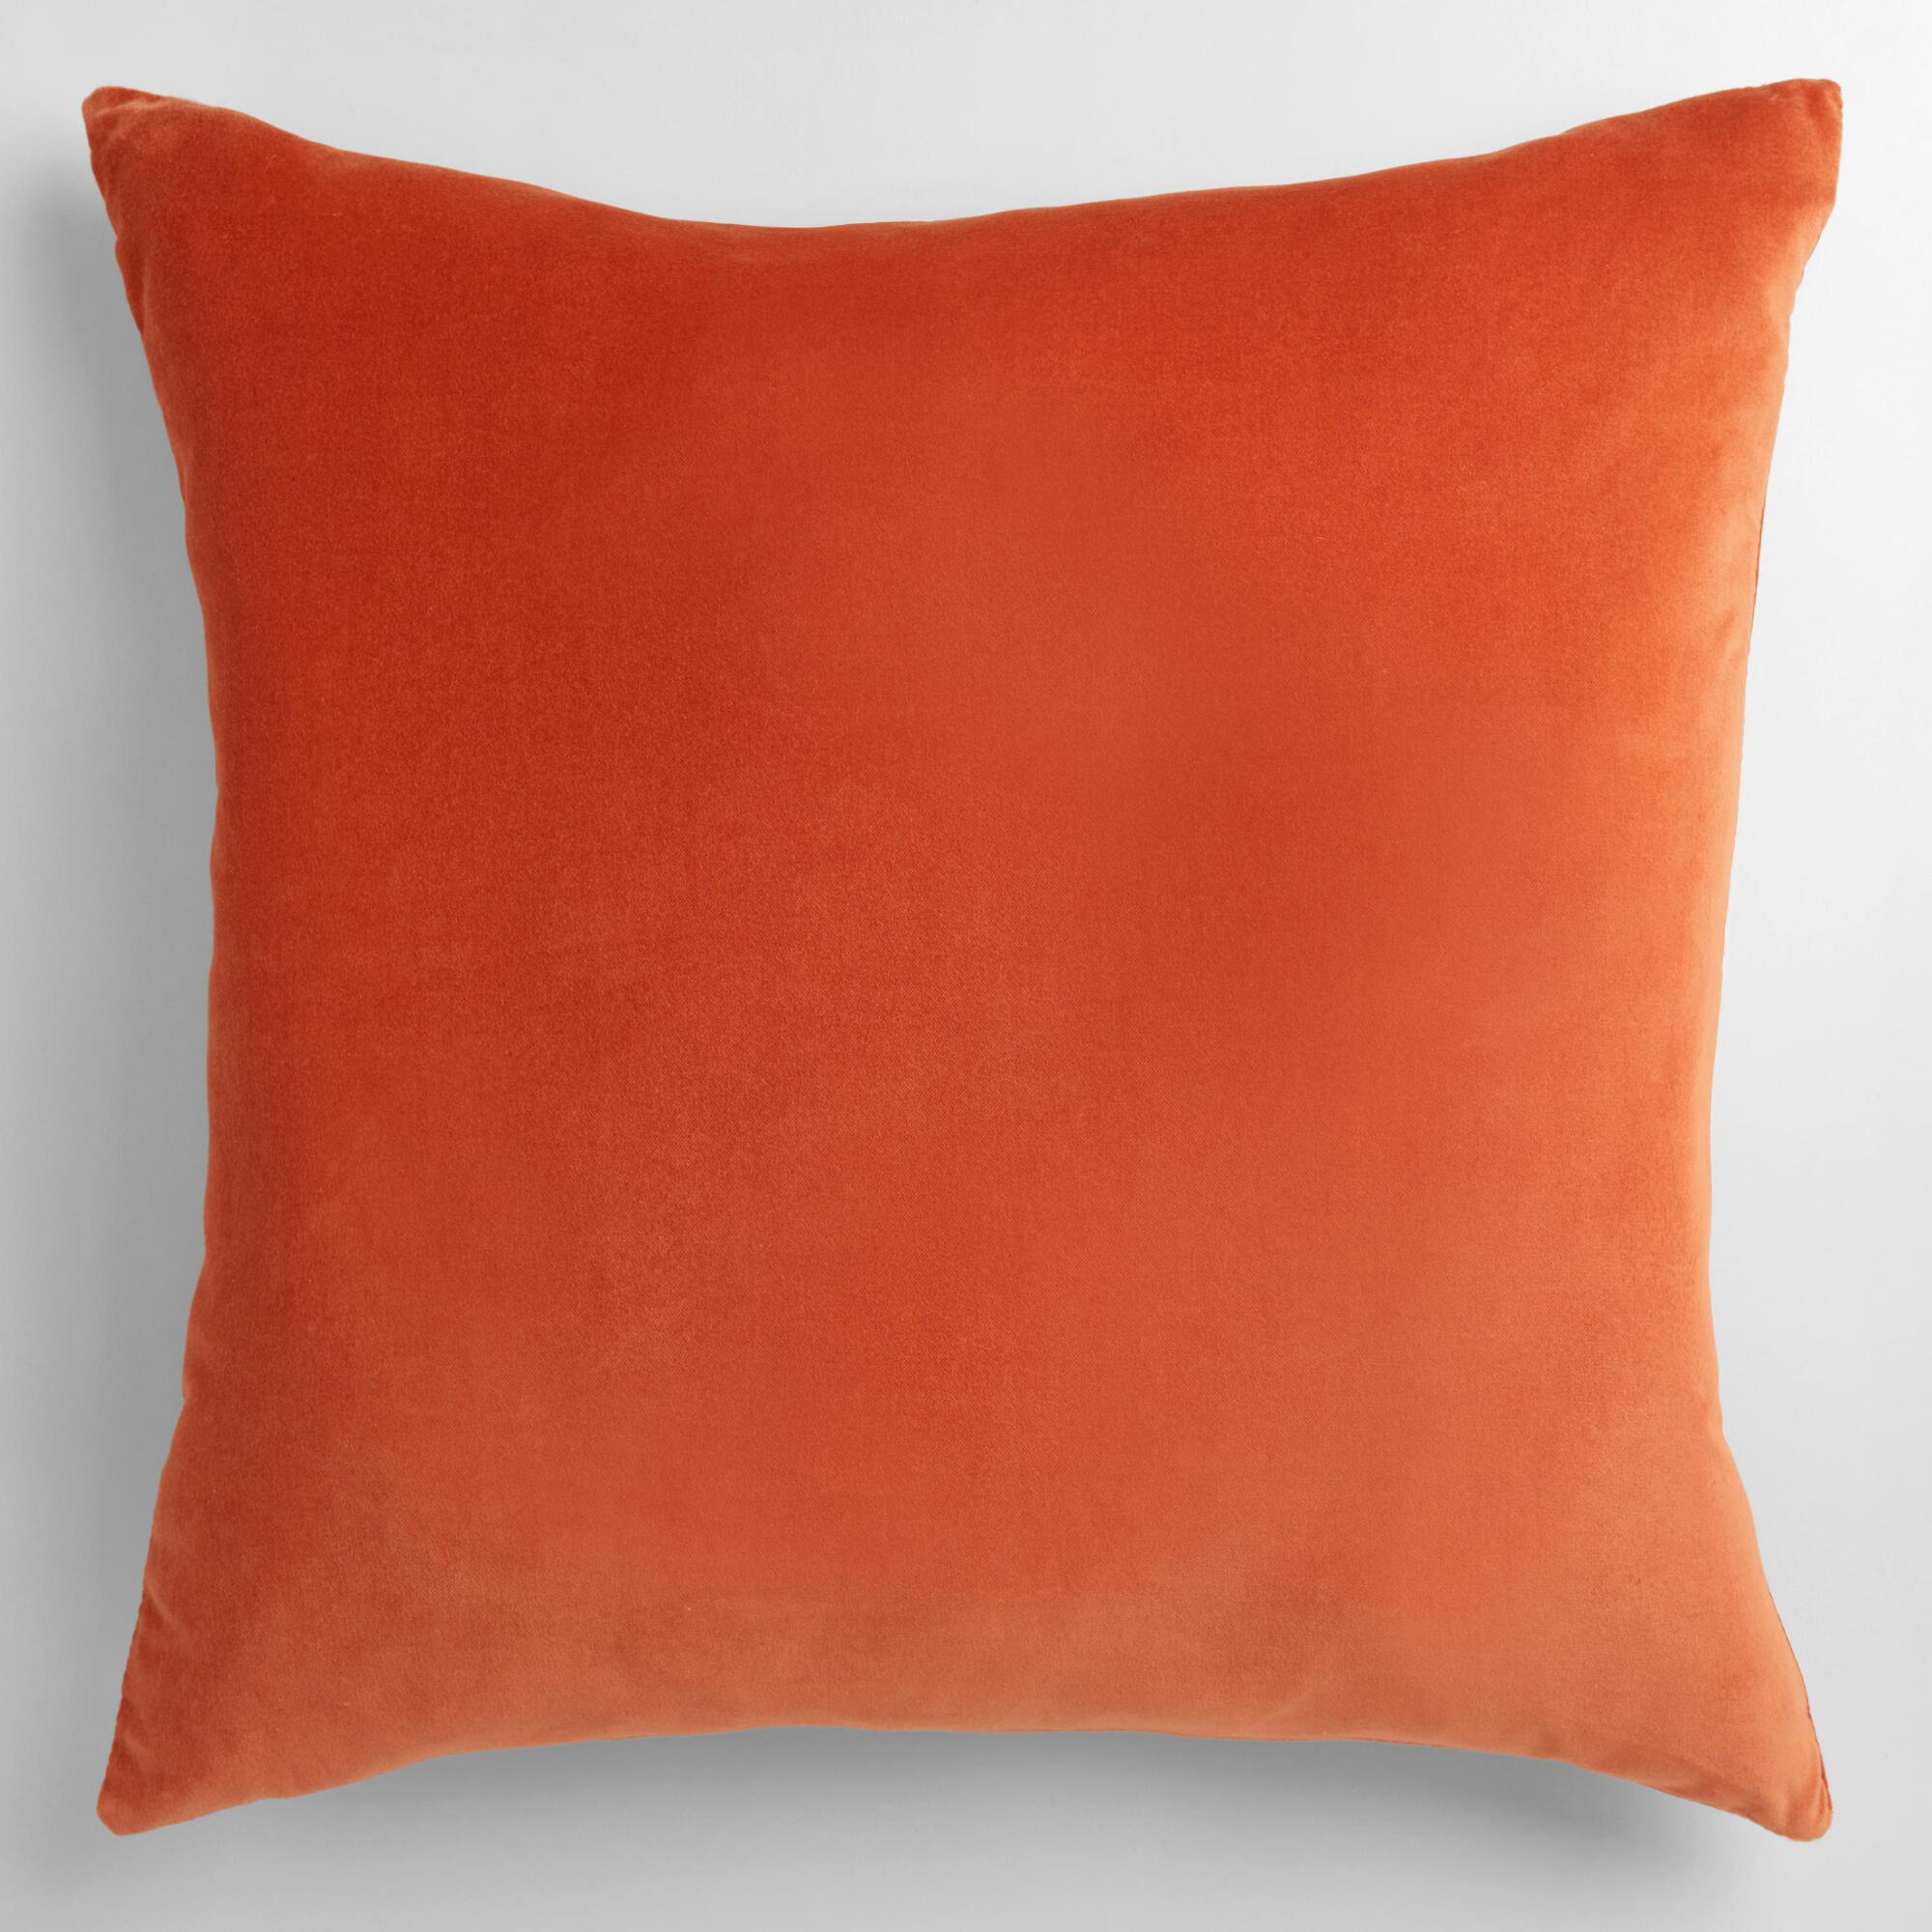 Throw Pillows With Orange : Orange Velvet Throw Pillow World Market